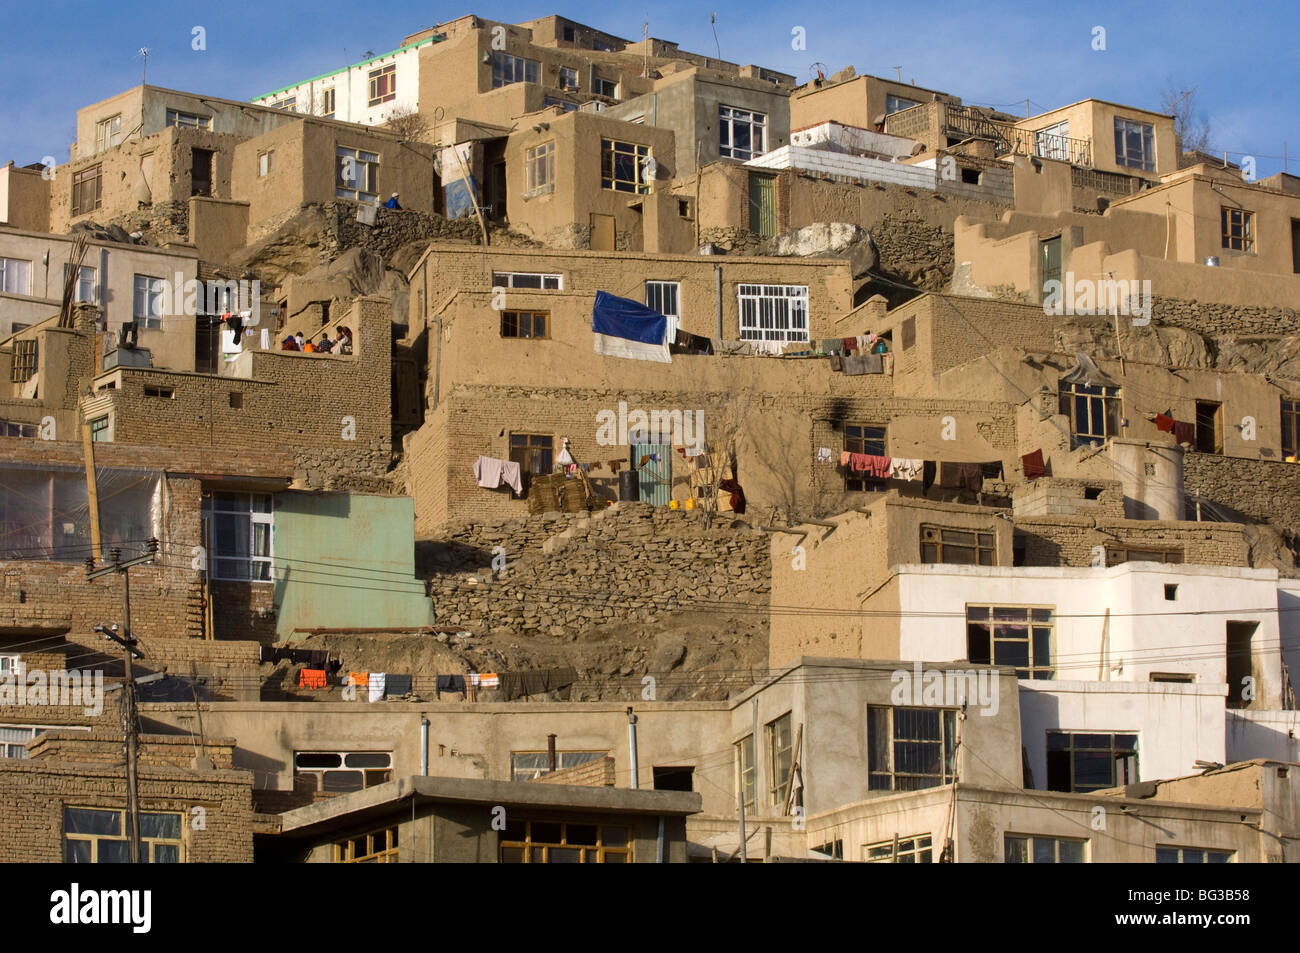 Houses in Kabul city, Afghanistan. - Stock Image